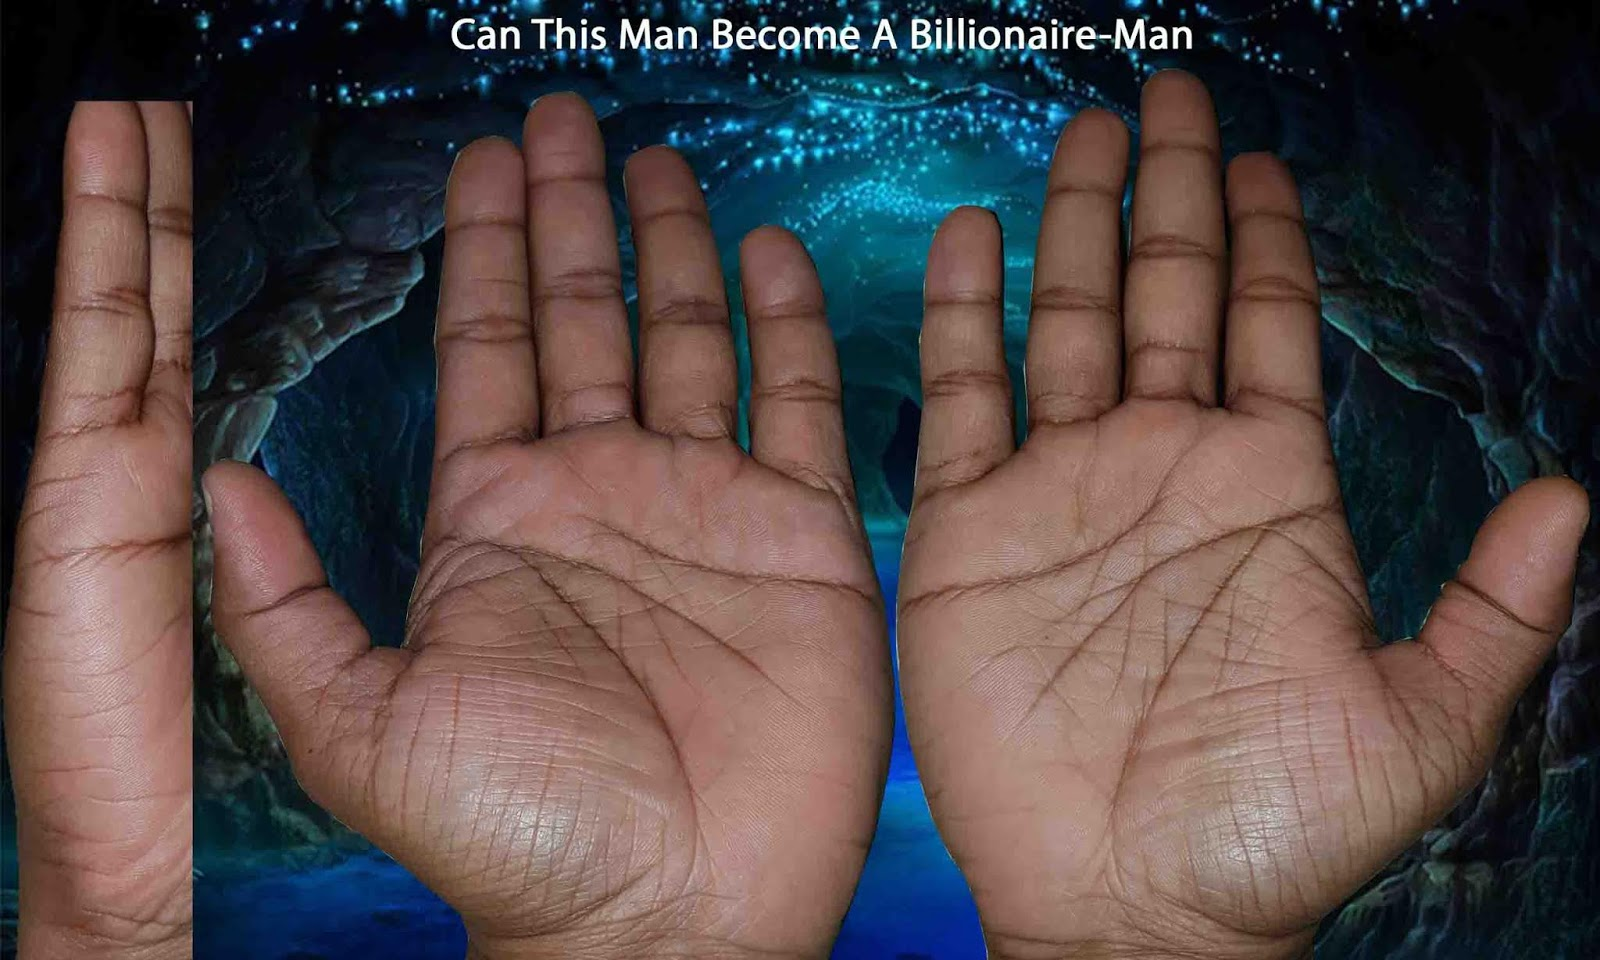 Can This Man Become A Billionaire-Man Case 2 - palmreading